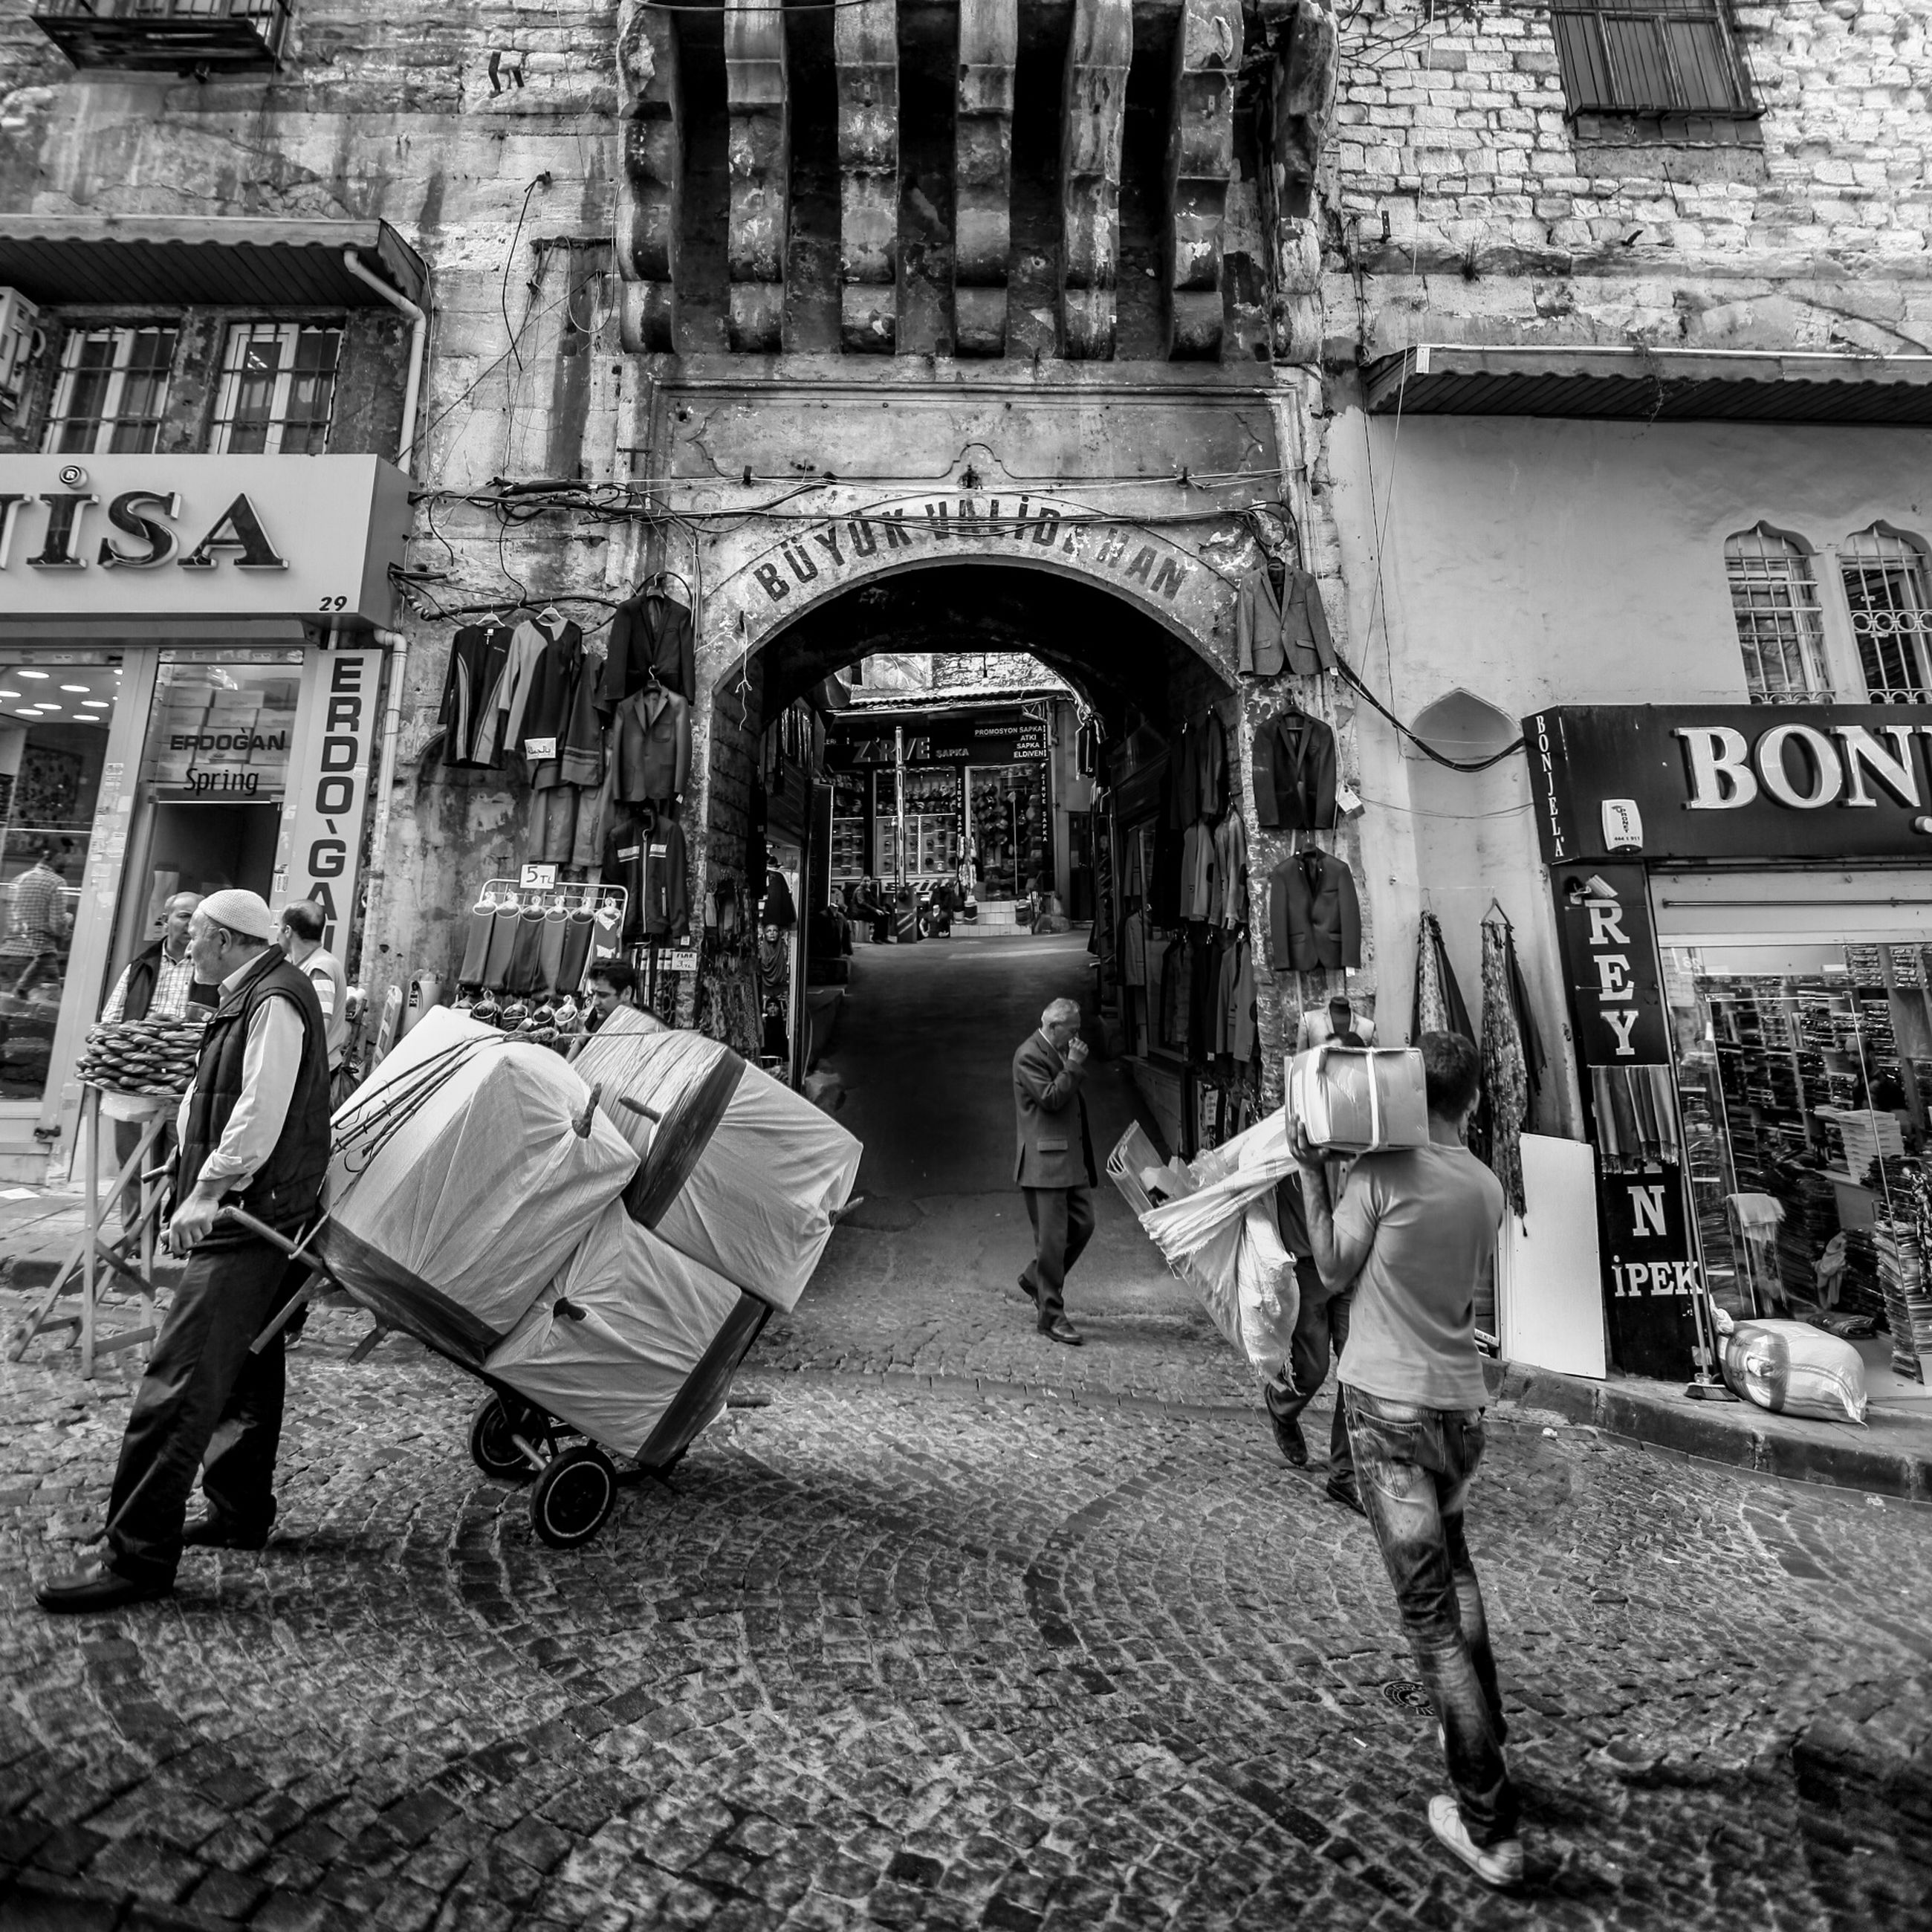 architecture, building exterior, built structure, street, city, transportation, mode of transport, land vehicle, day, bicycle, building, outdoors, cobblestone, city life, incidental people, sidewalk, residential building, store, chair, empty